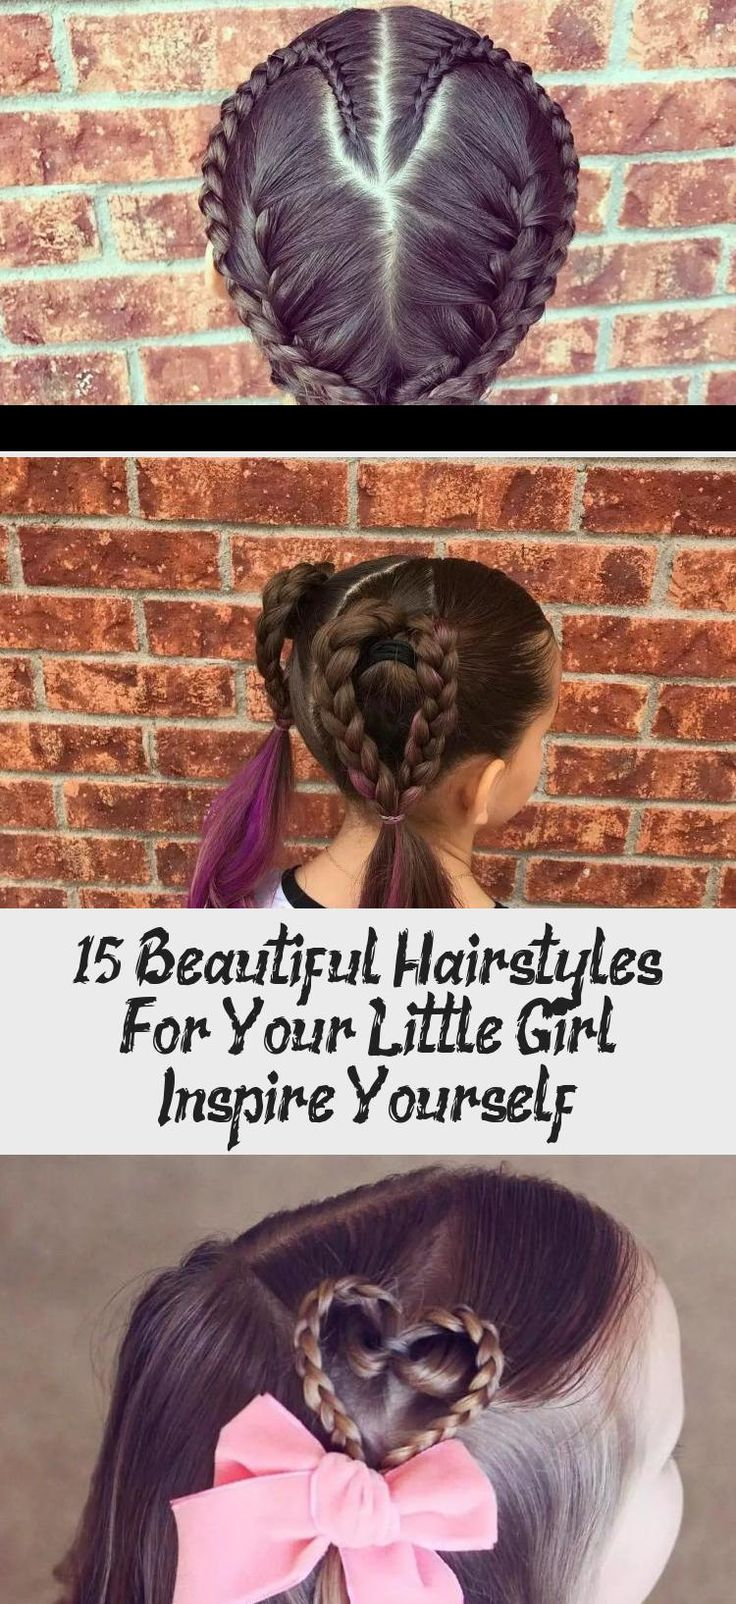 15 beautiful hairstyles for your little girl: inspire yourself  #beautiful #hairstyles #inspire #little #yourself #babyhairstylesInfant #babyhairstyles1YearOld #babyhairstylesWithBangs #babyhairstylesIllustration #babyhairstylesSketch